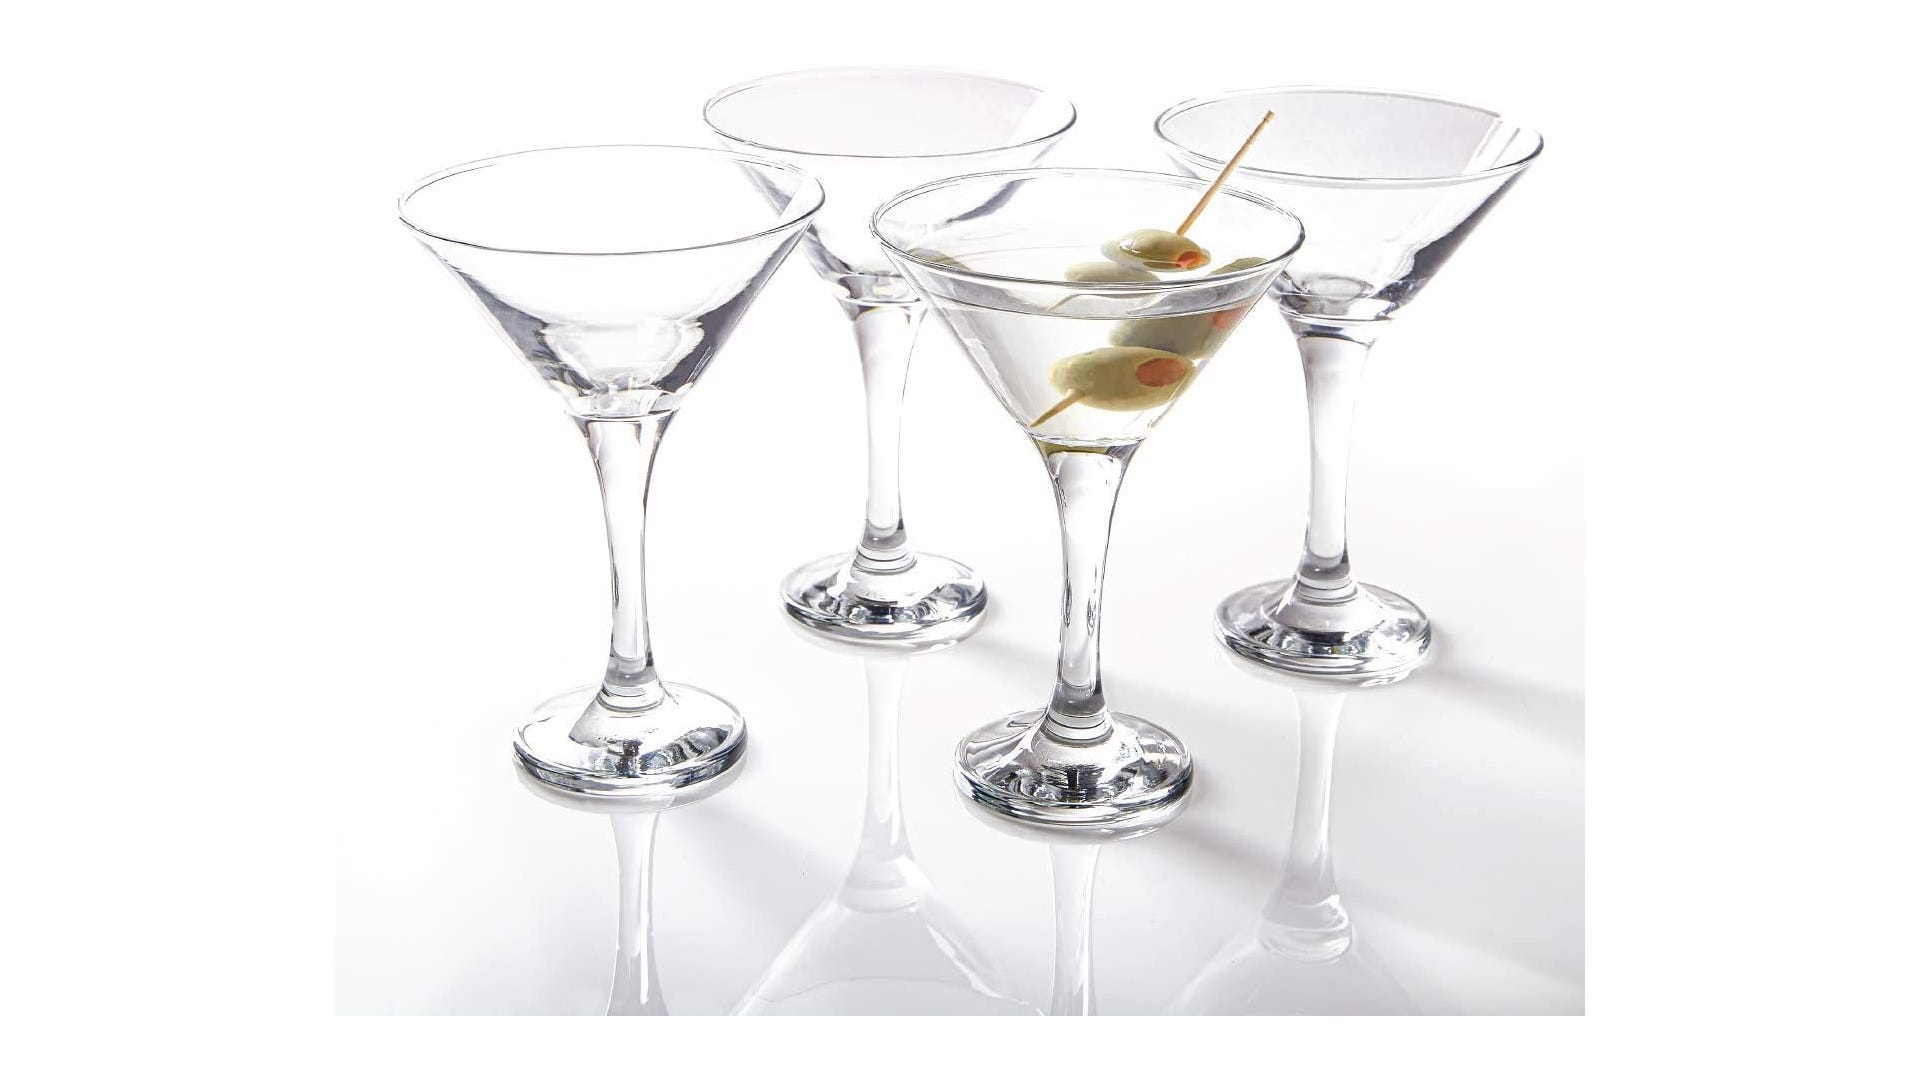 four Y shaped martini glasses made of clear glass, one with liquid and olives inside